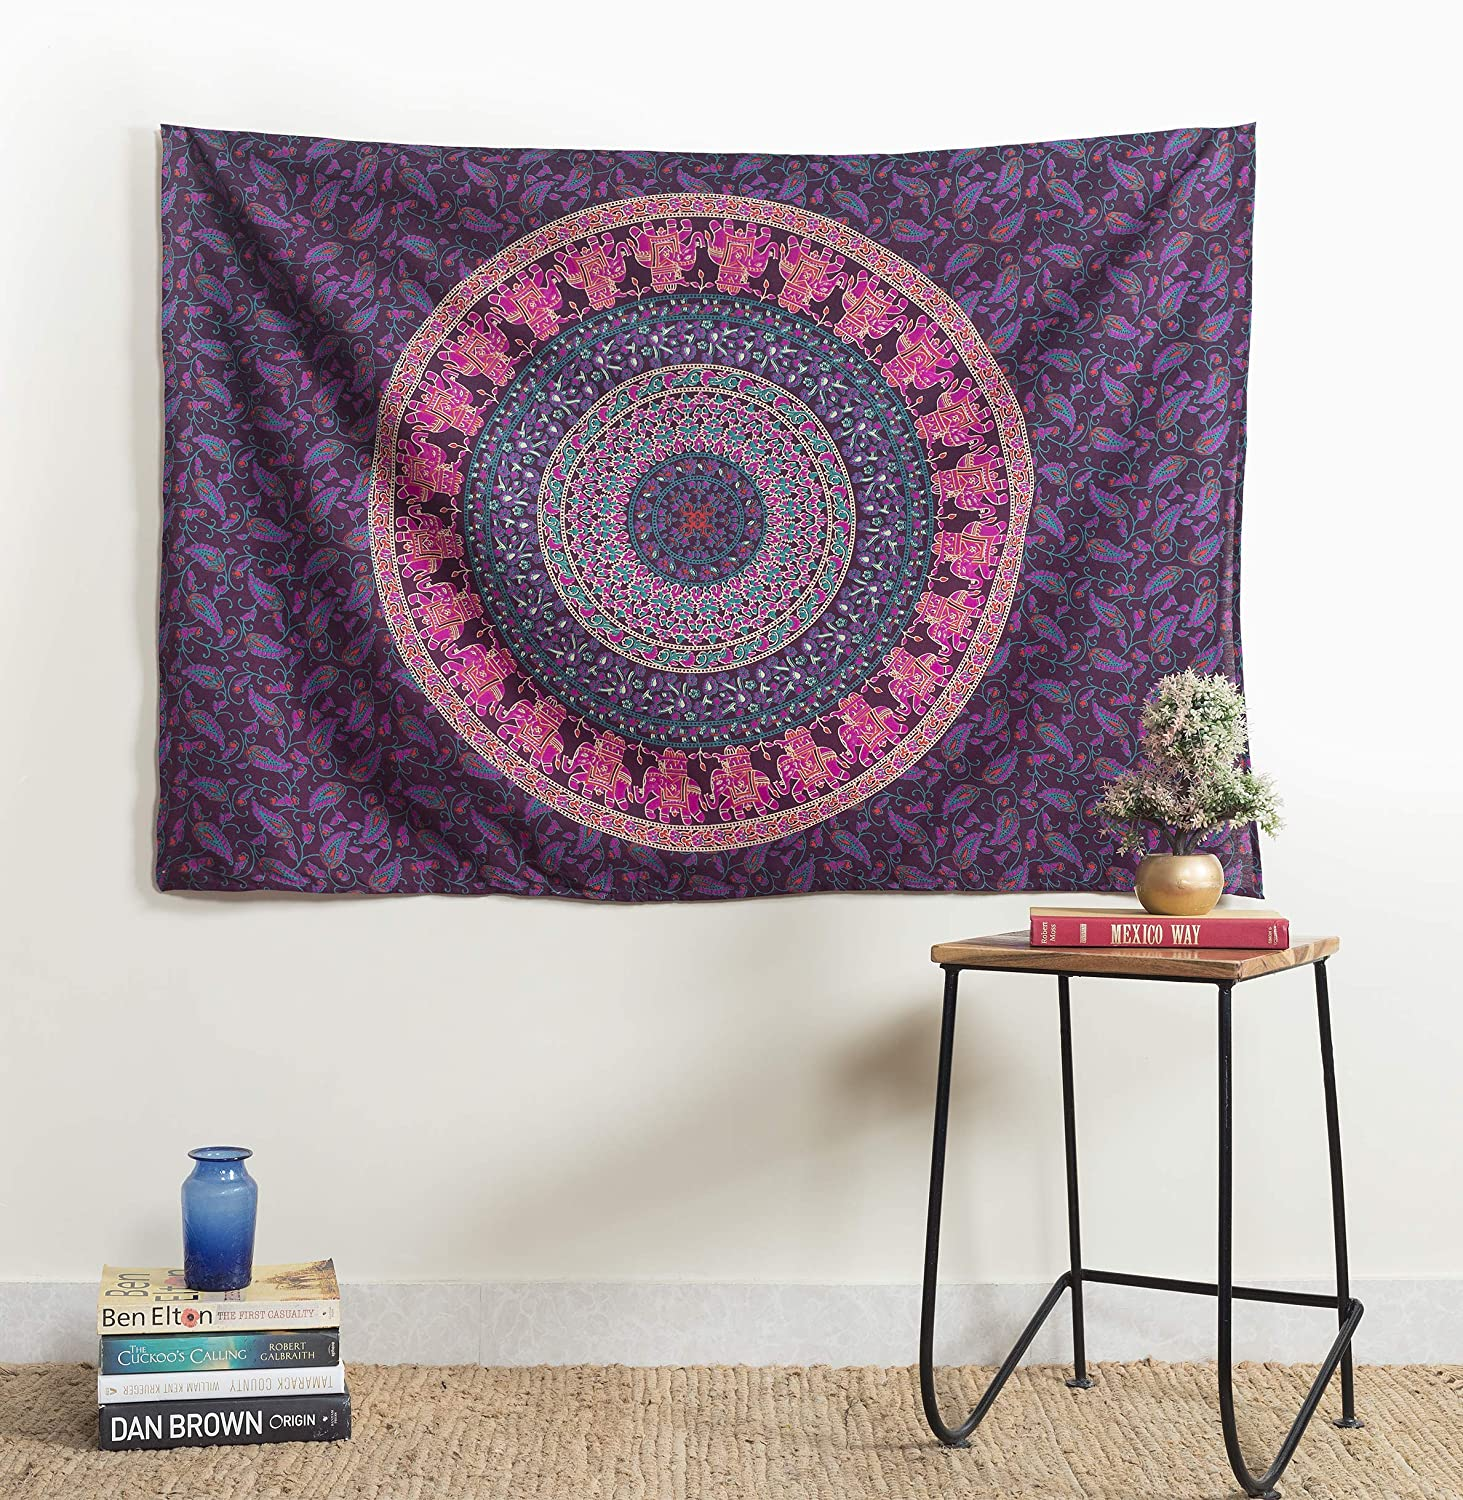 Popular Handicrafts Kp1250 Hippie Mandala We OFFer at ! Super beauty product restock quality top! cheap prices Bohemian Tapestry Wall